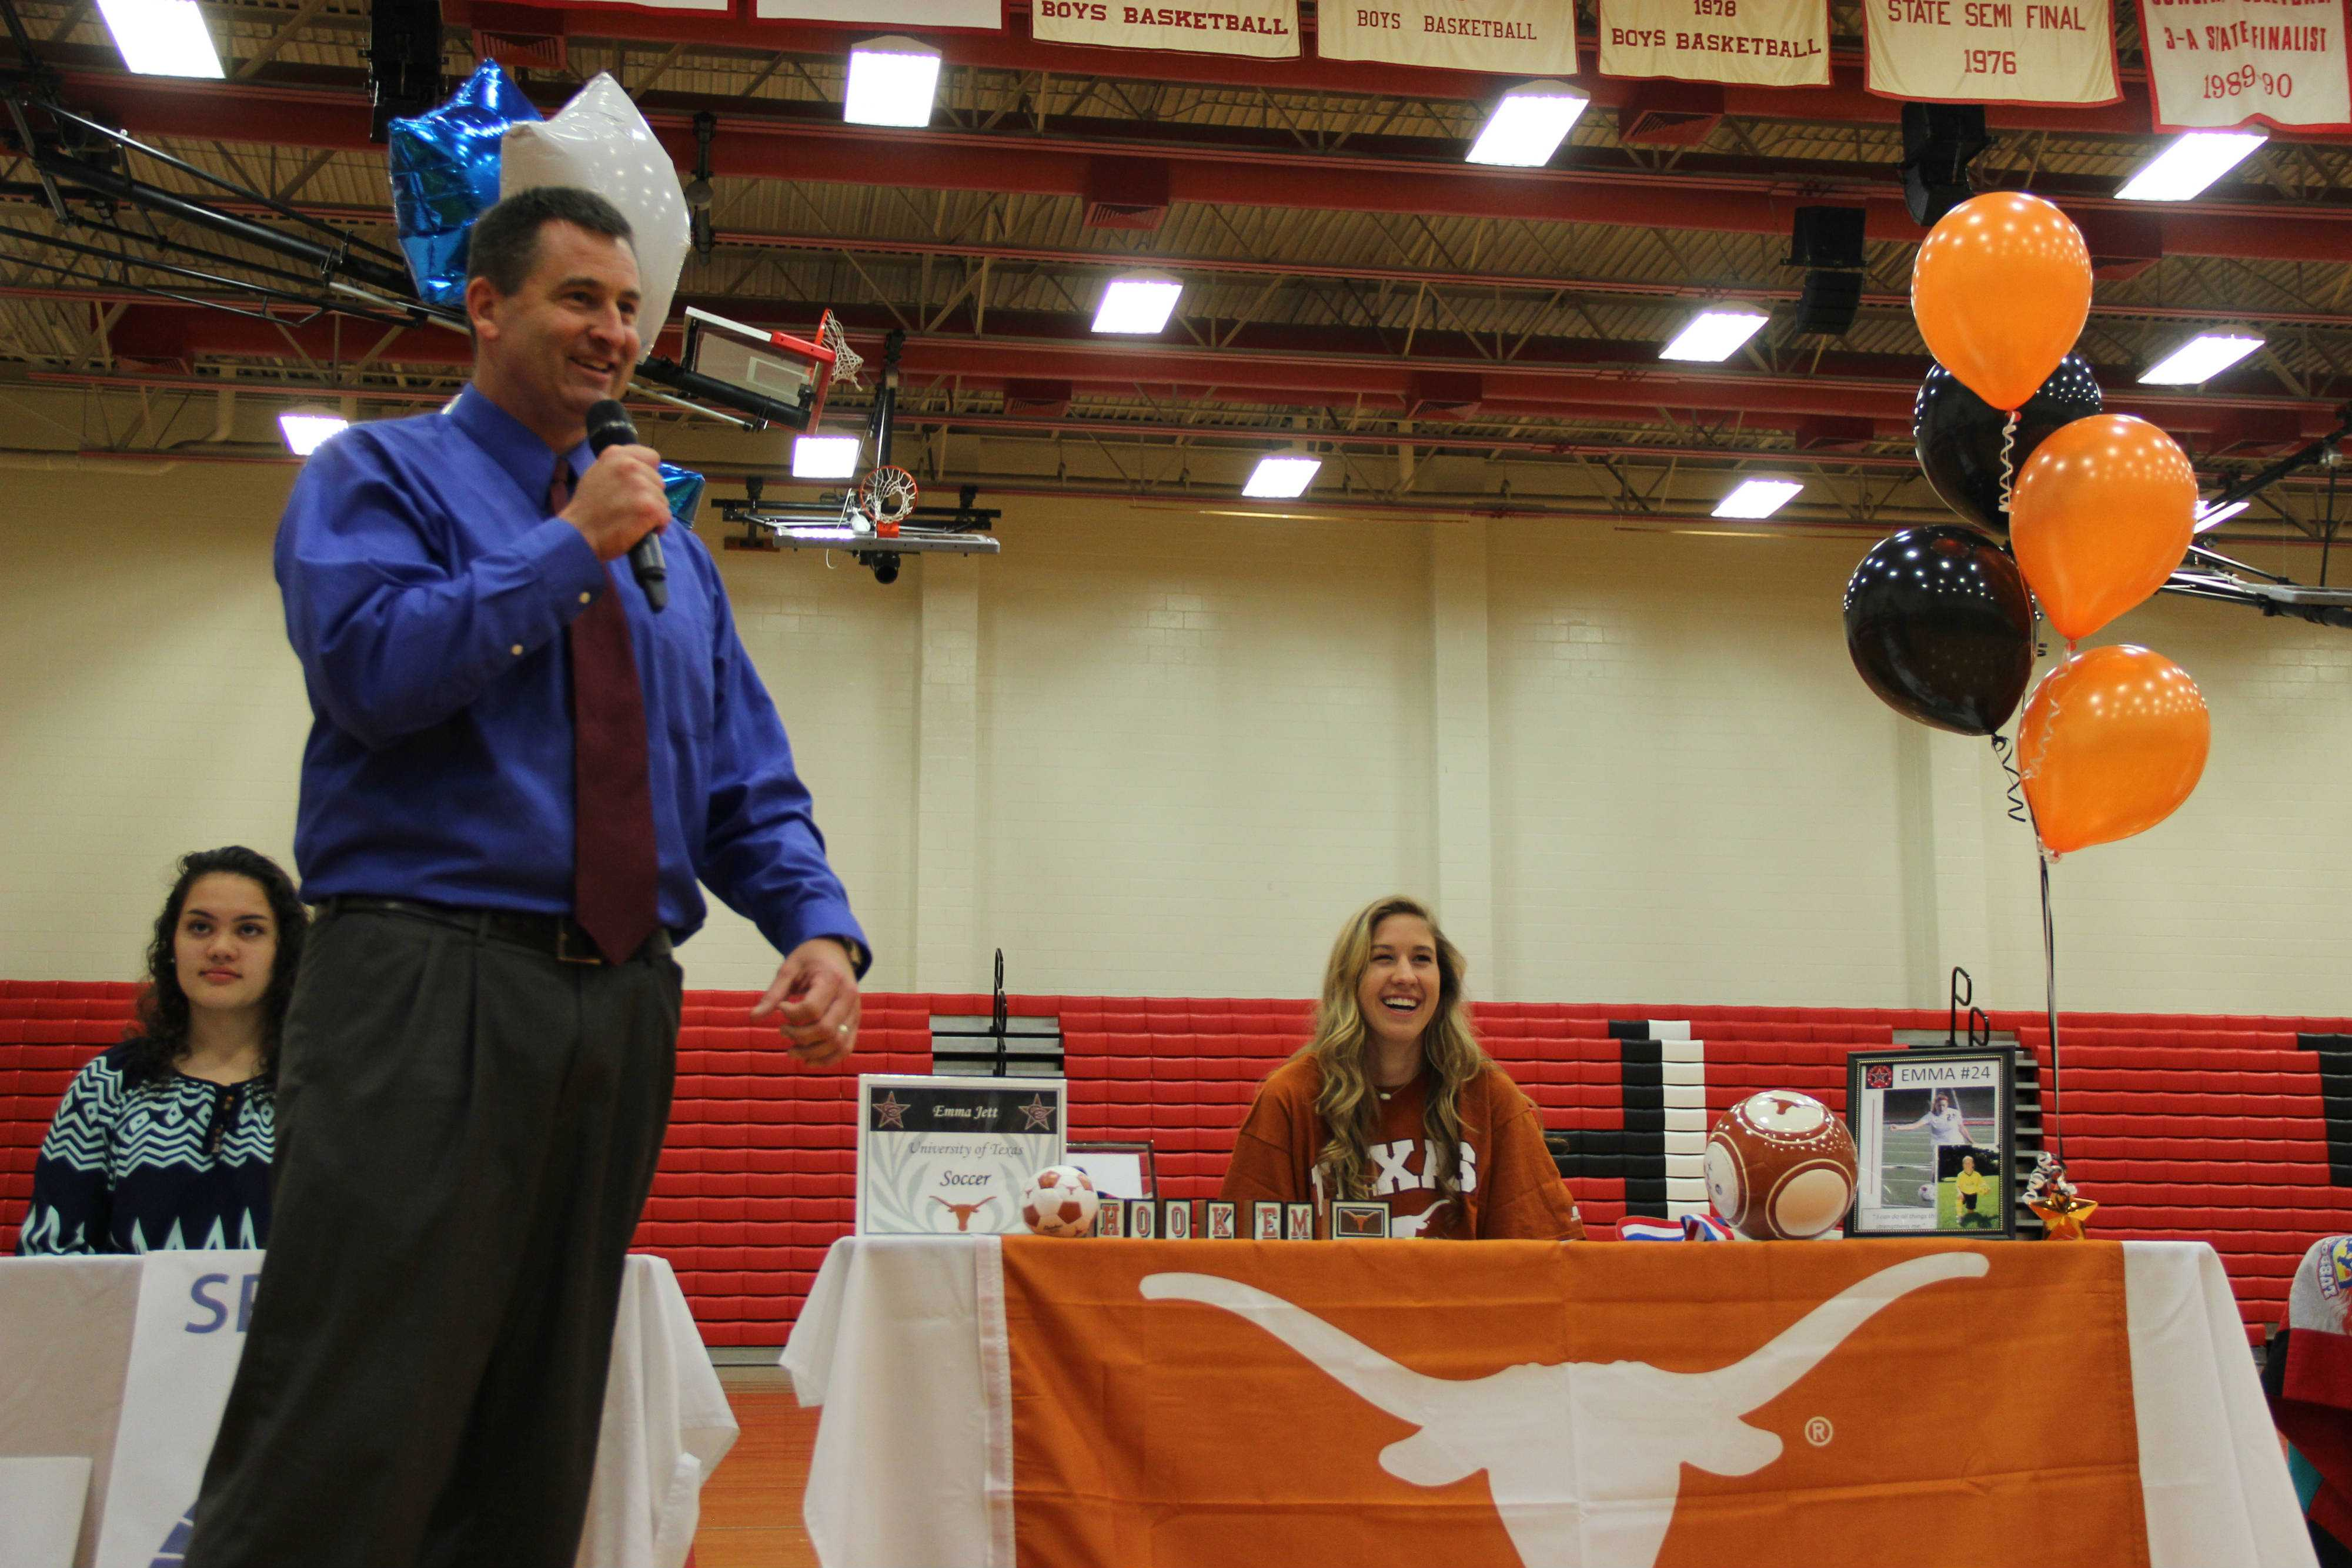 Senior girls soccer player Emma Jett laughs as former coach Chris Stricker tells a story to the crowd about Jett. Jett signed to play soccer at the University of Texas. Photo by Ale Ceniceros.